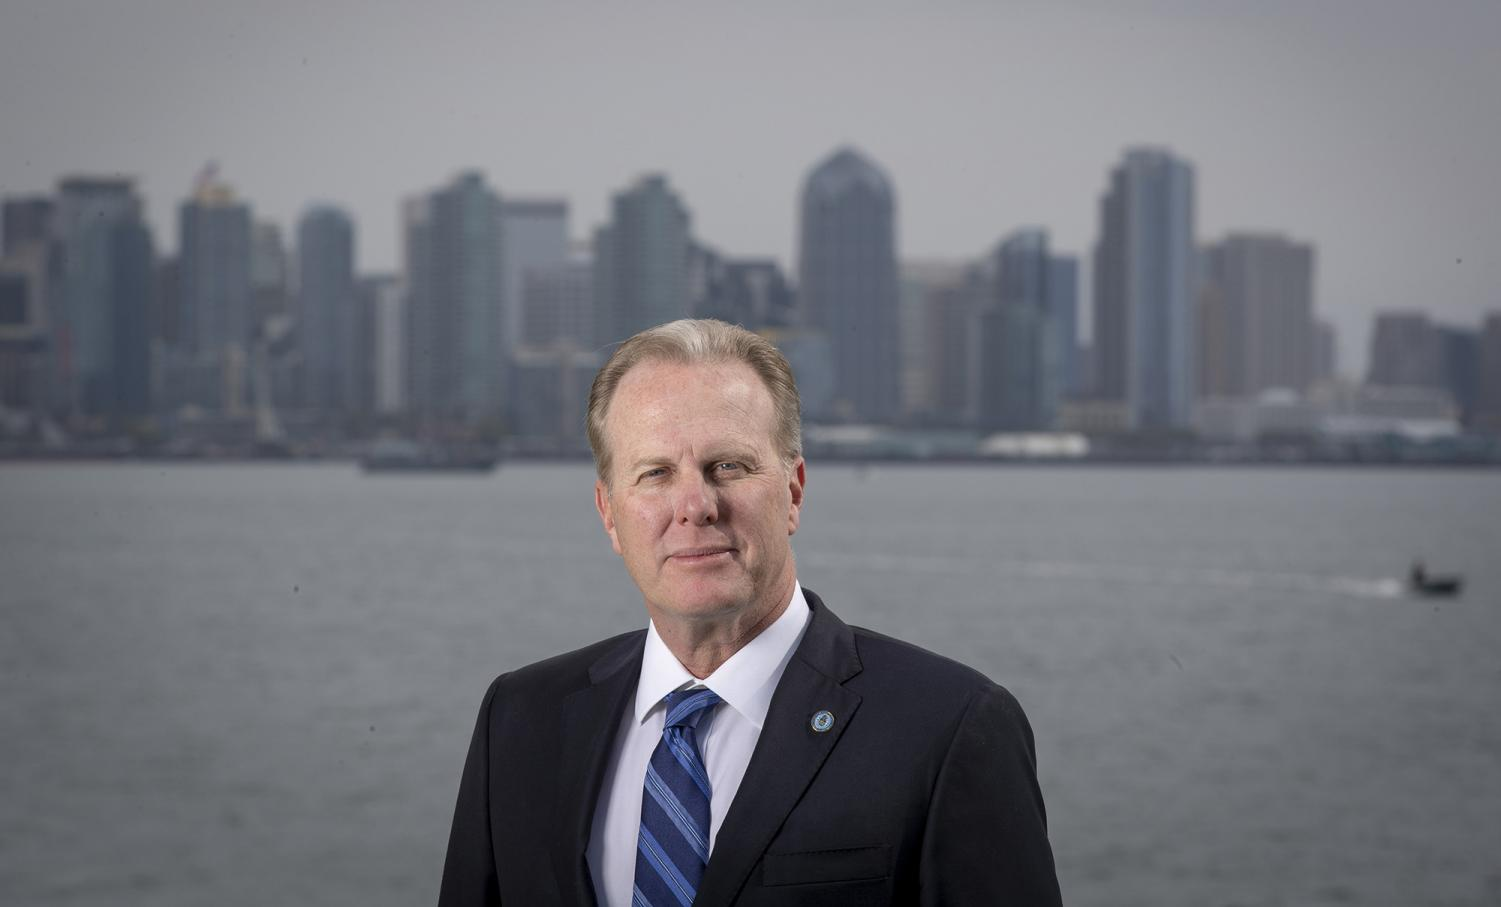 Mayor Faulconer's failure to do better for homeless people is shameful. Photo Credits: MCT Campus